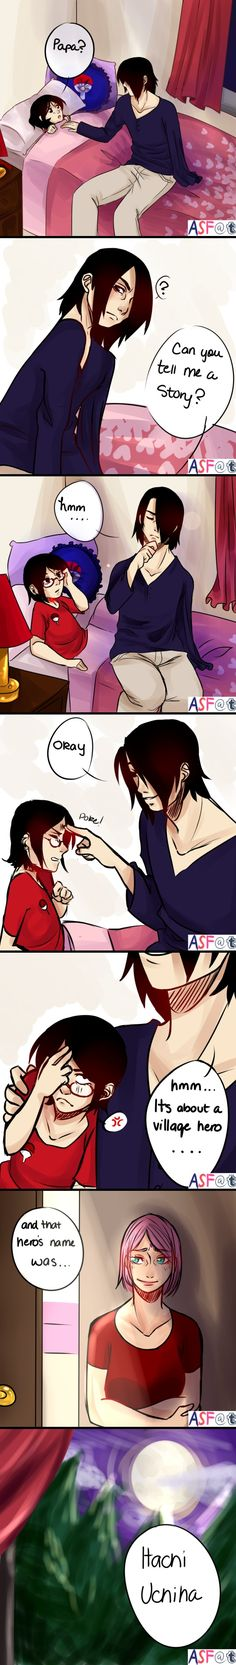 Sasuke and Sarada (I'm gonna cry..)